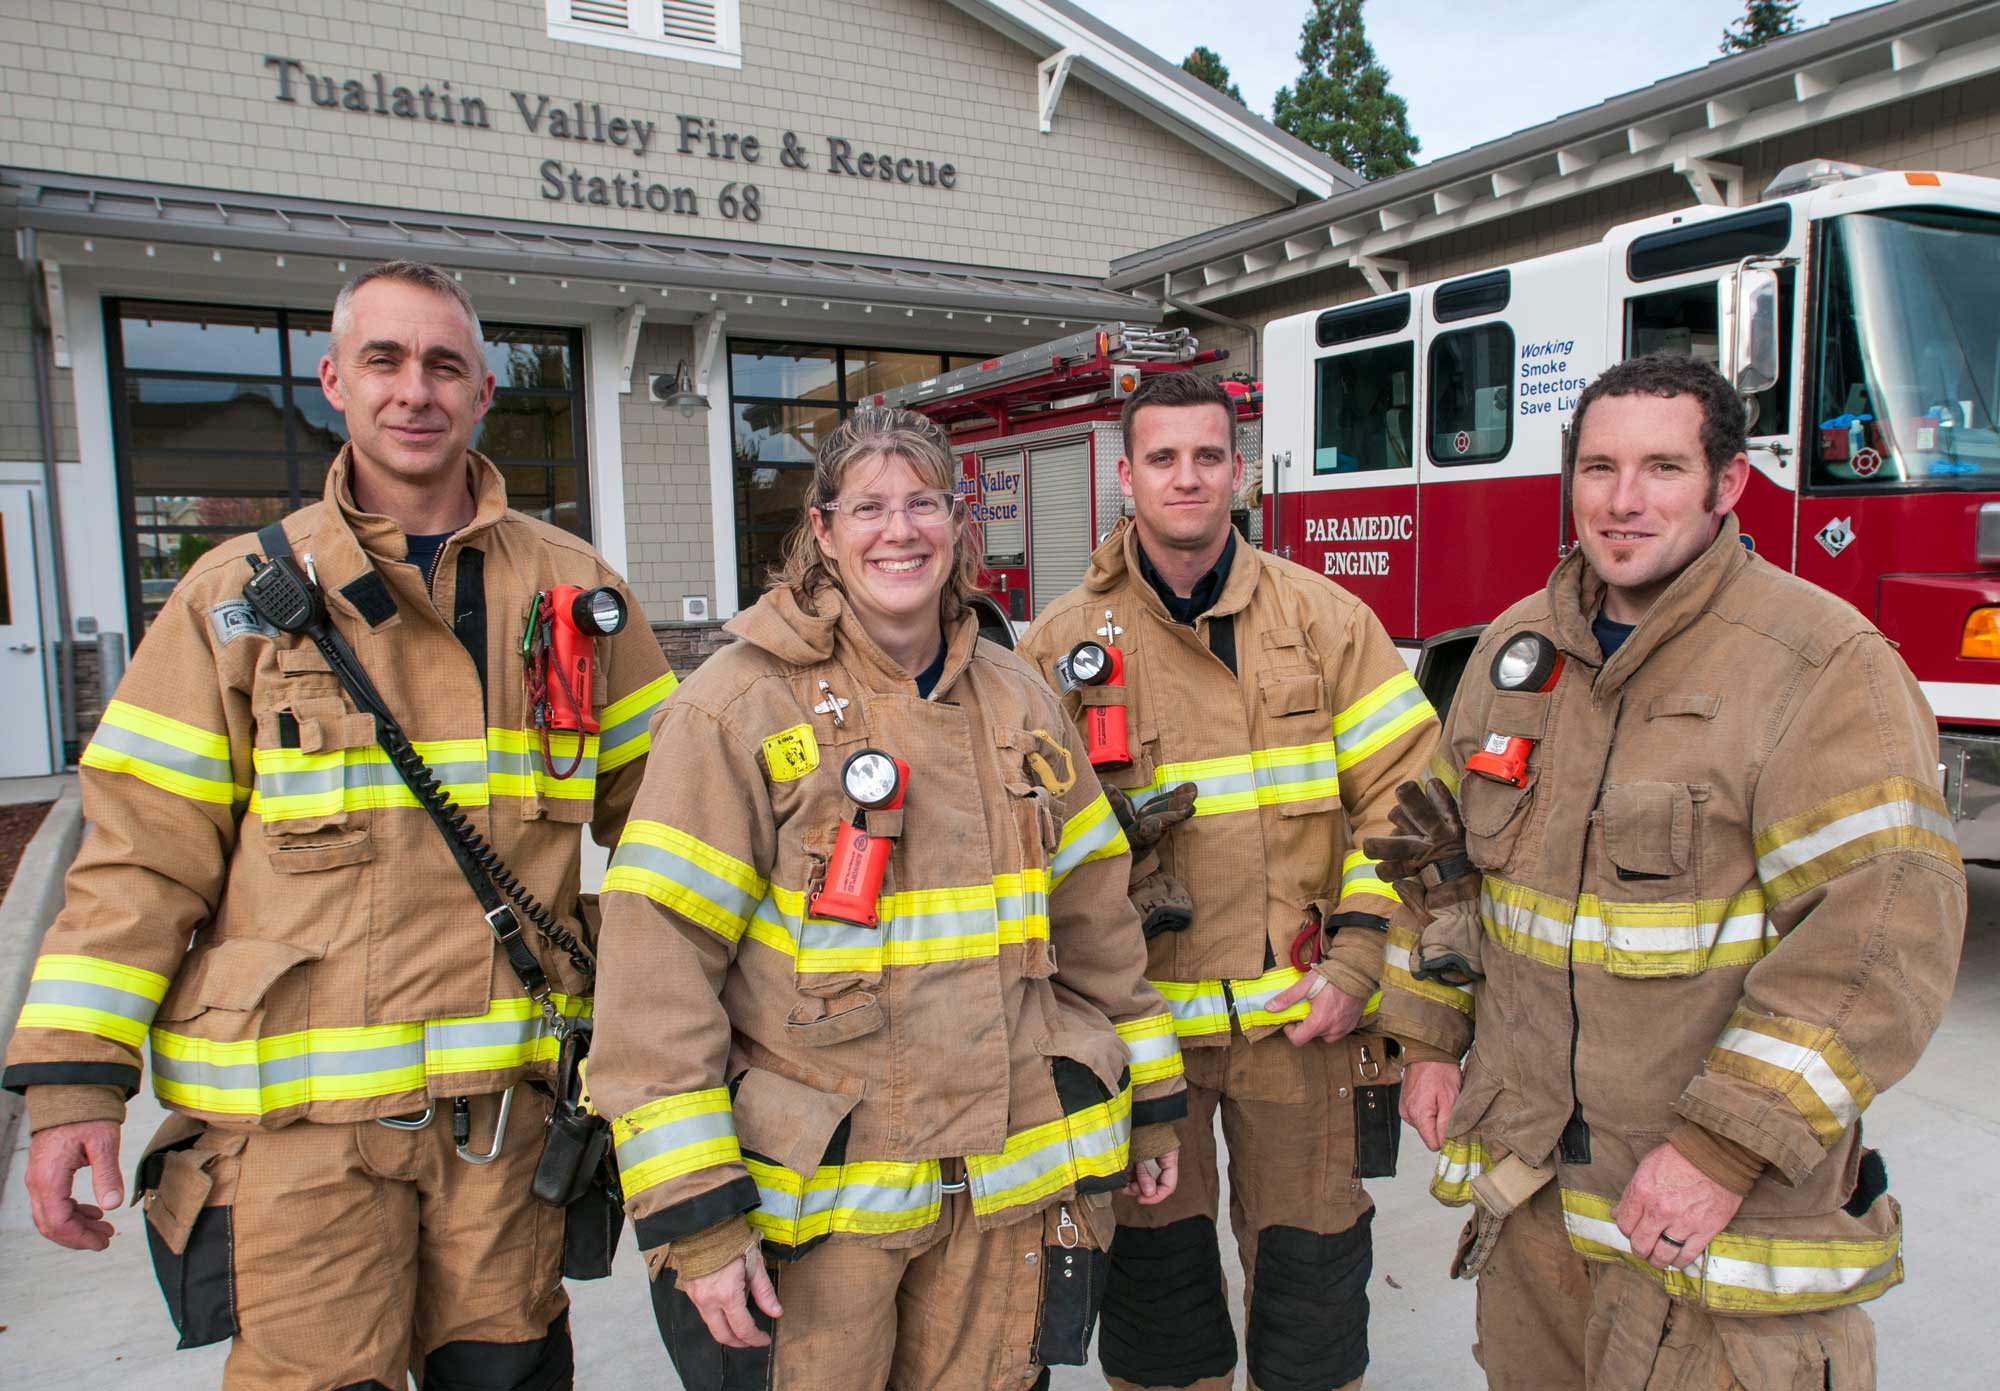 TVF&R Firefighters